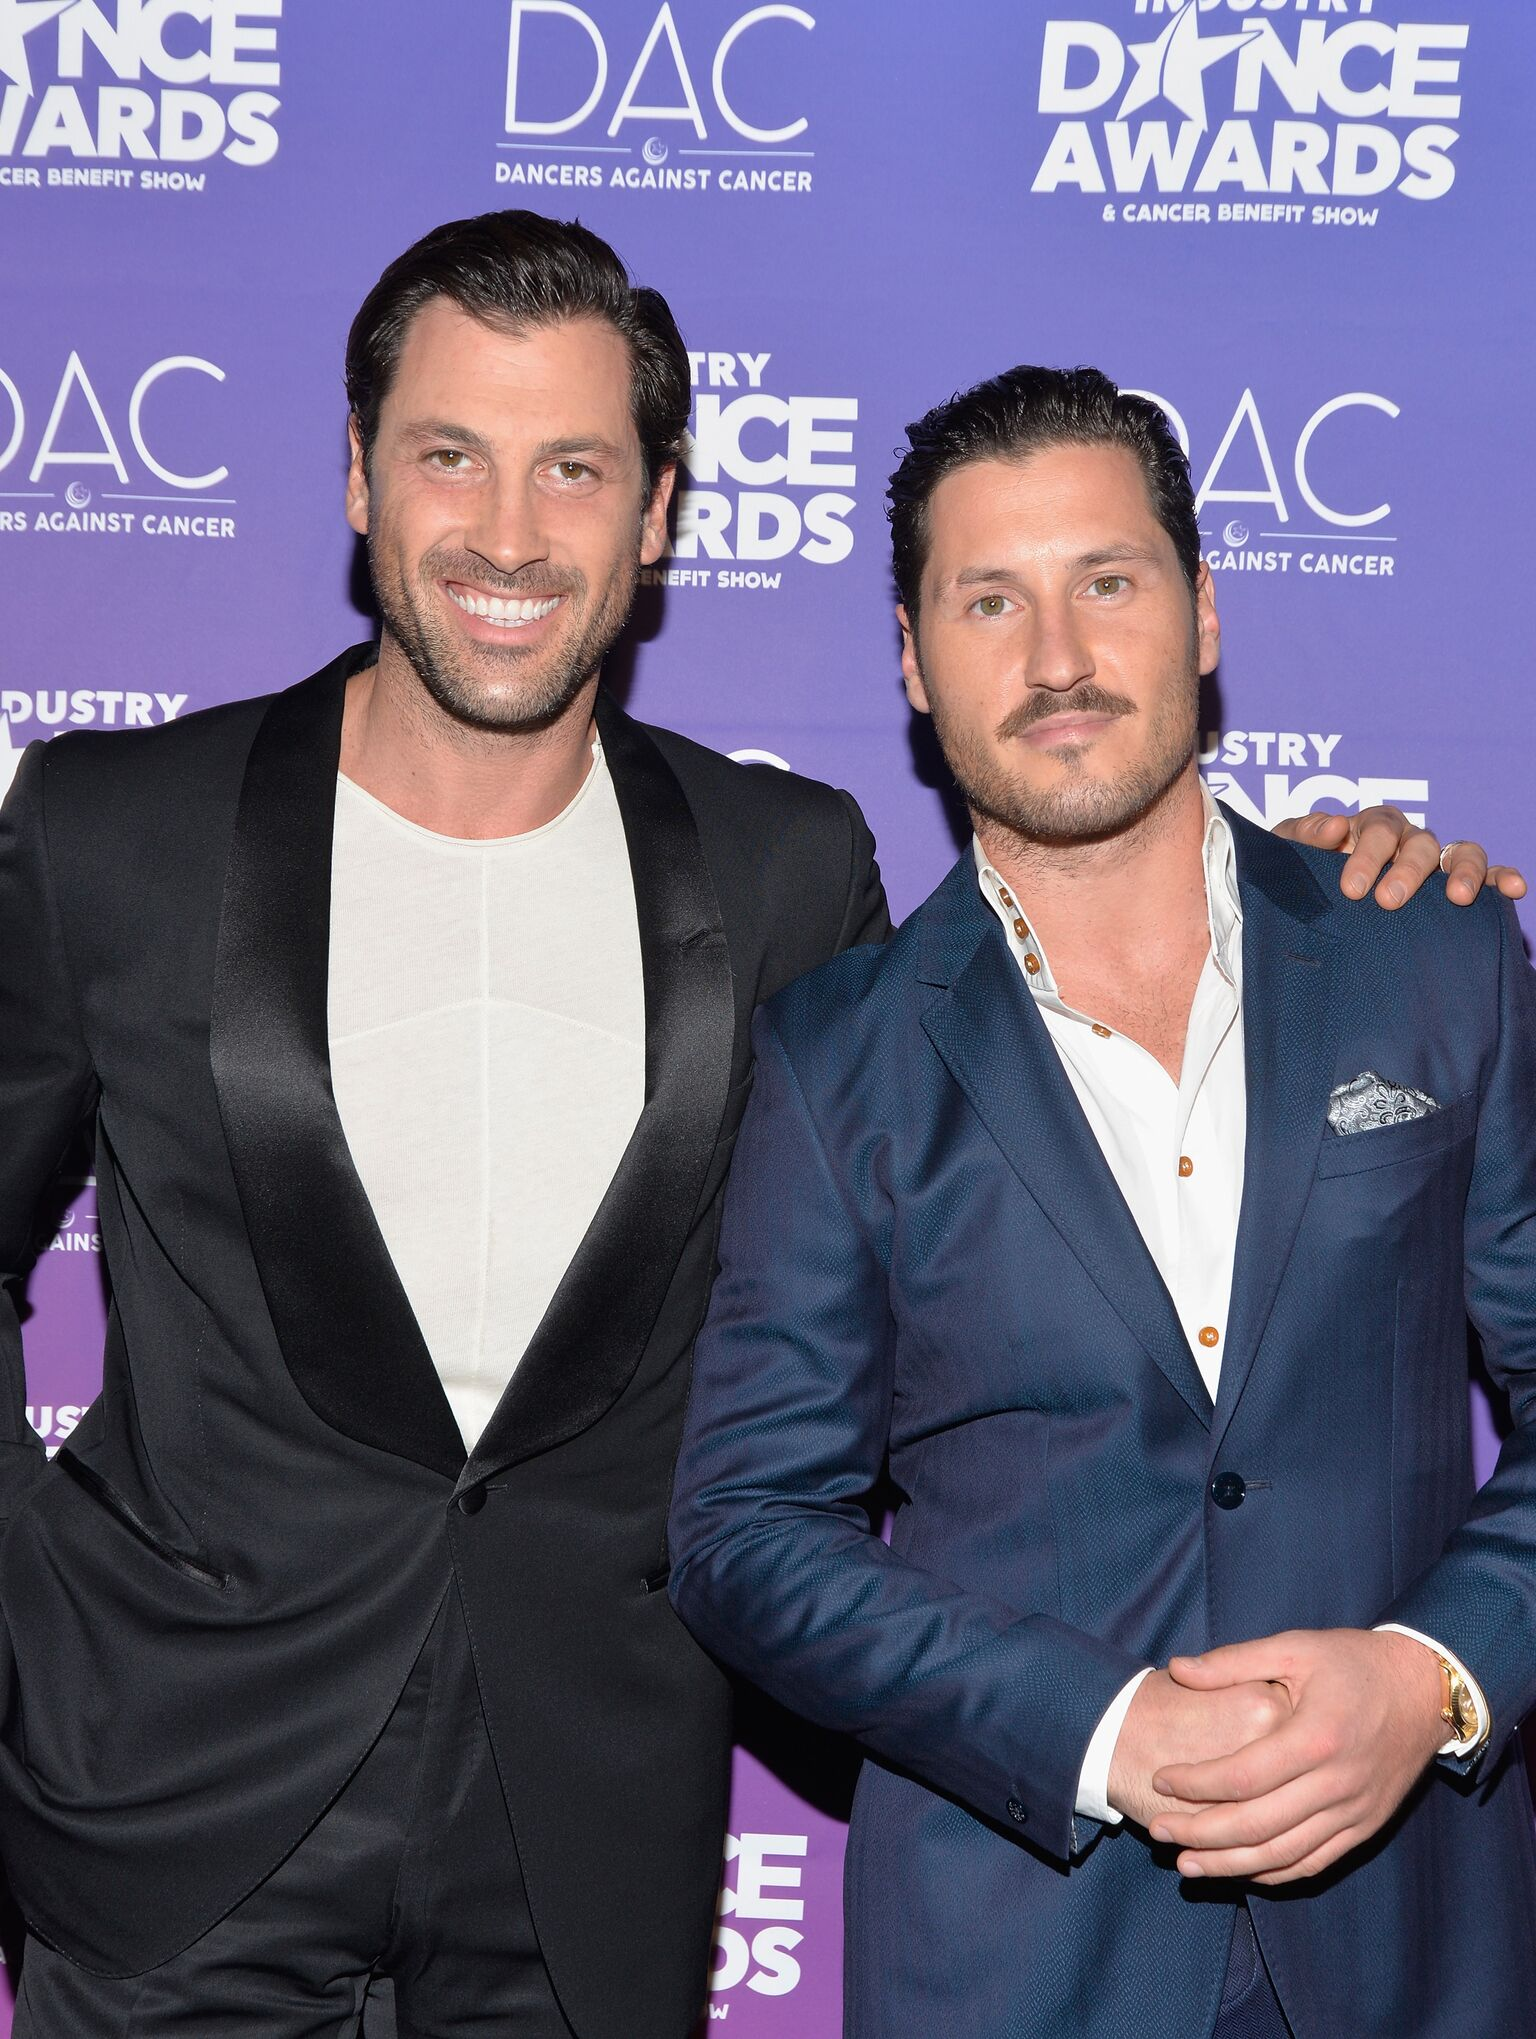 rofessional dancers Maksim Chmerkovskiy and Val Chmerkovskiy attend the 2017 Industry Dance Awards and Cancer Benefit Show | Getty Images / Global Images Ukraine